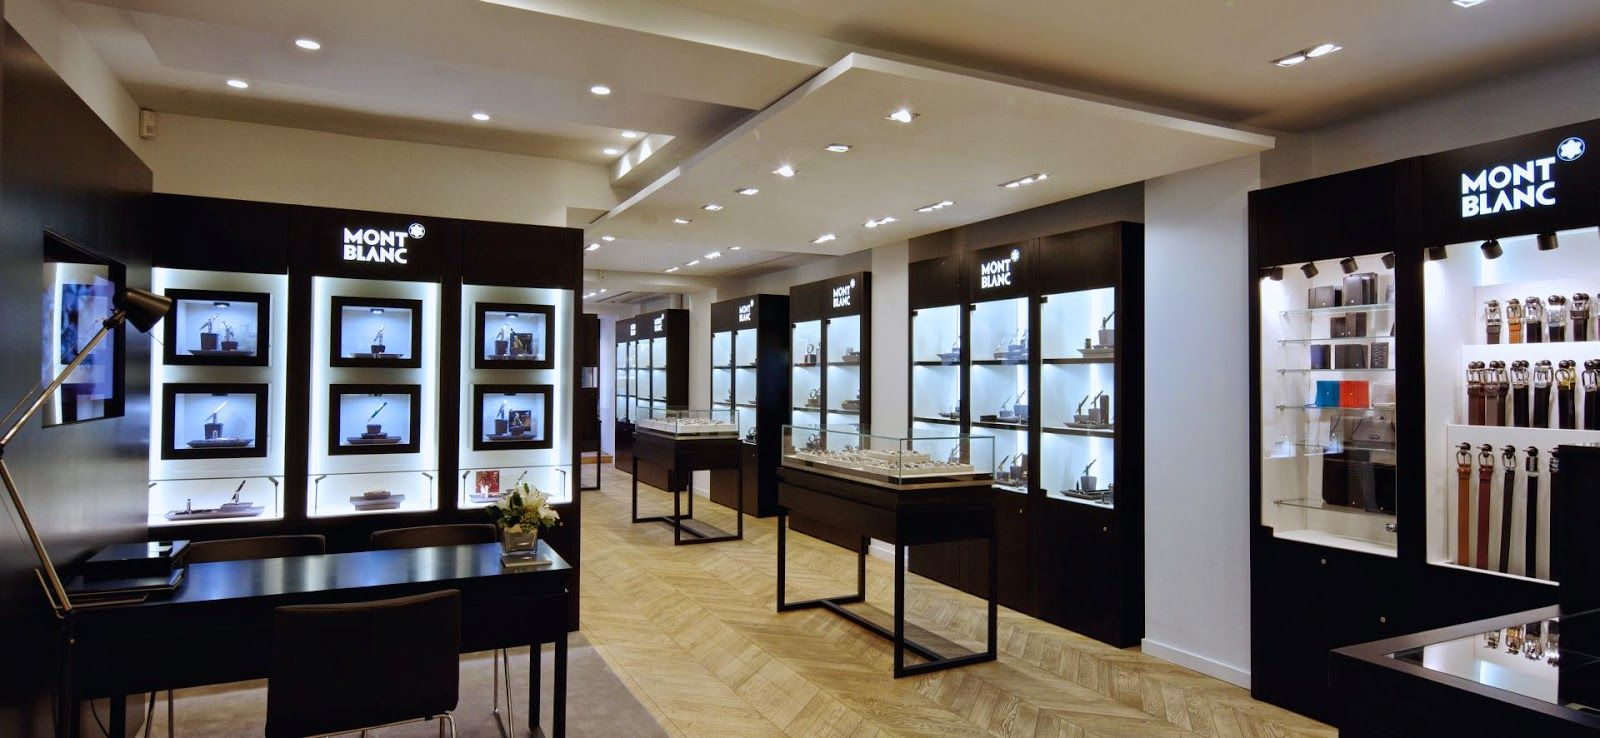 montblanc display case store google search jewels. Black Bedroom Furniture Sets. Home Design Ideas